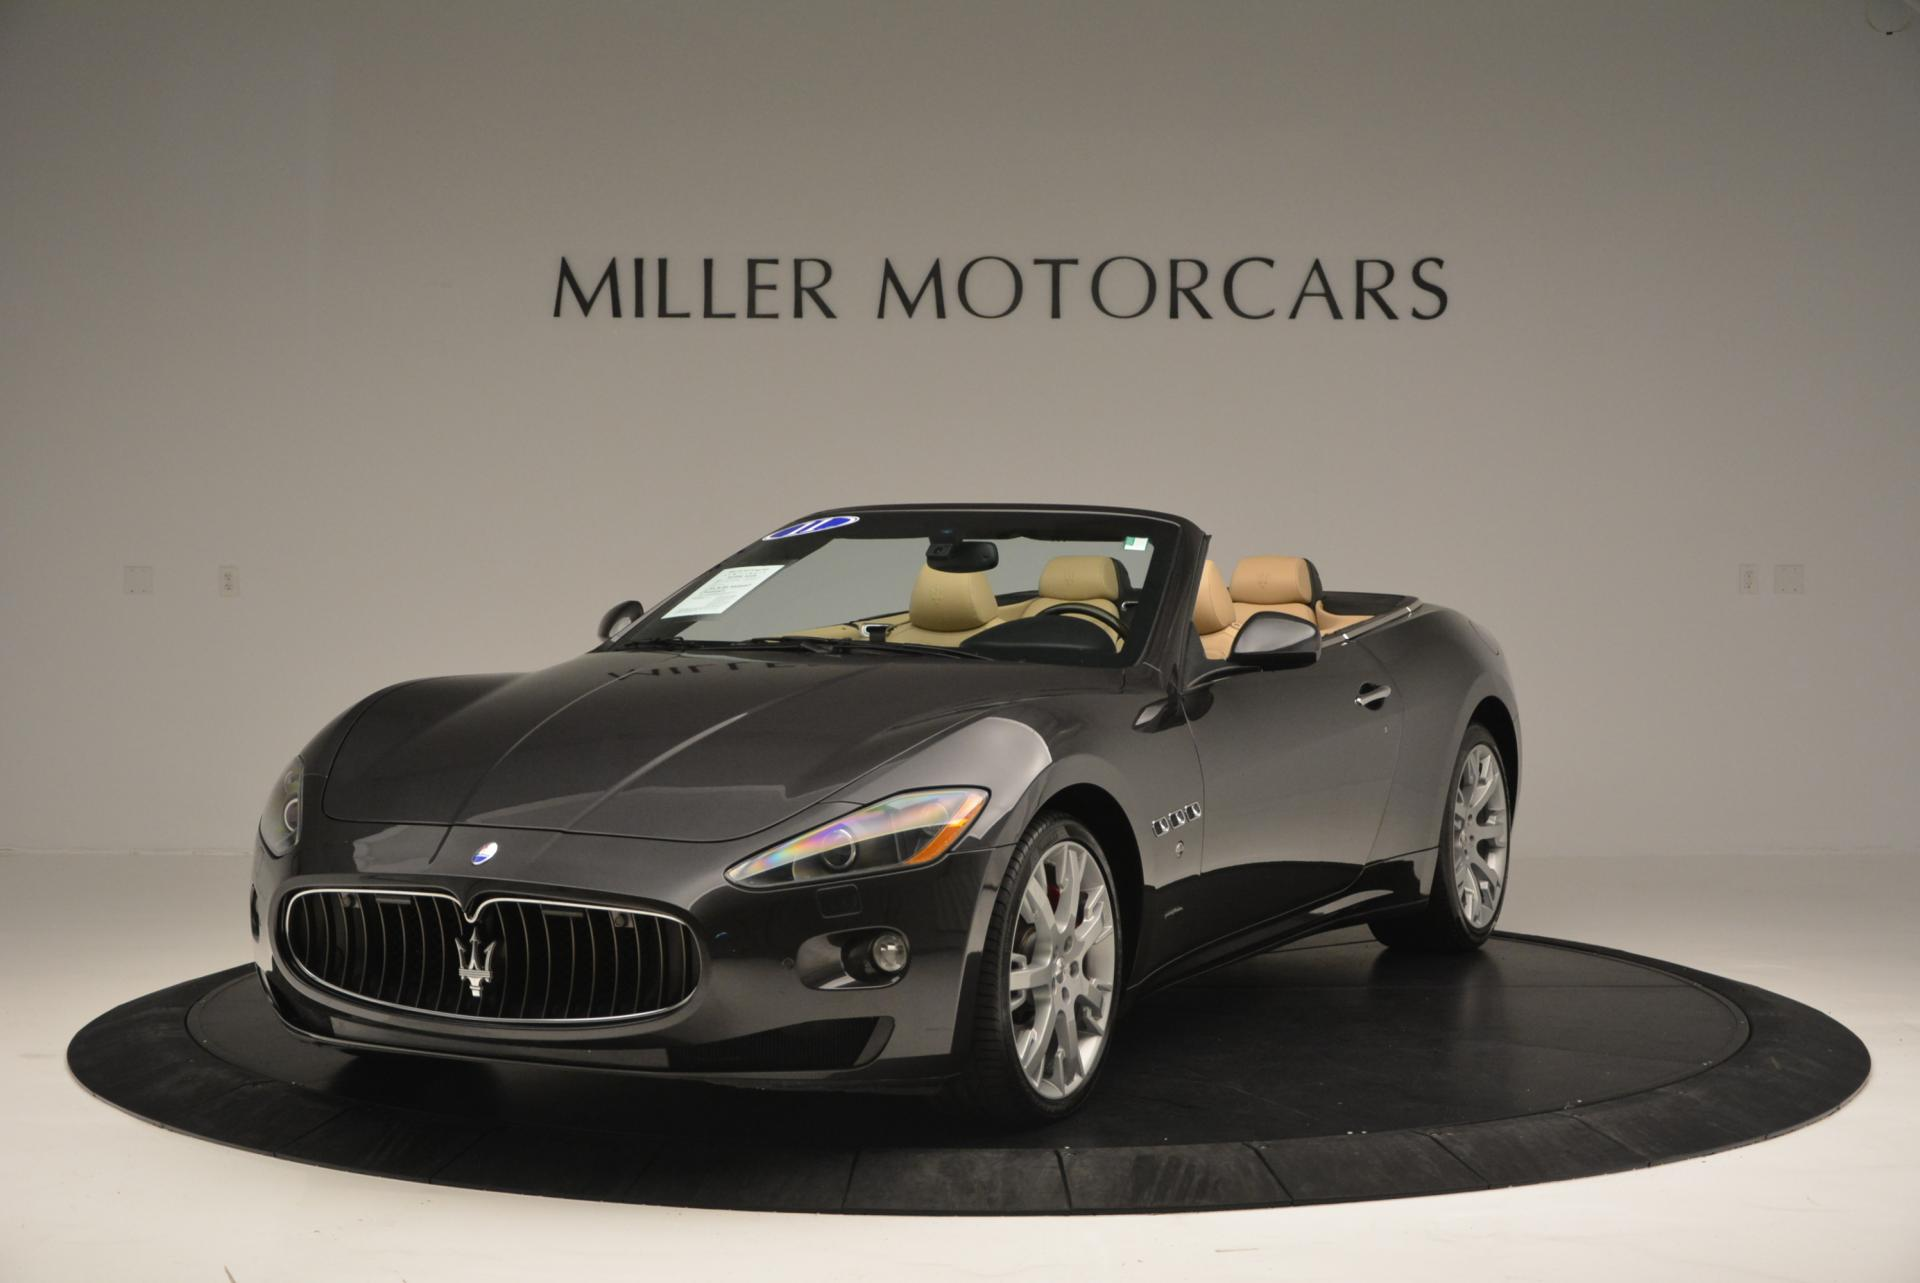 Used 2011 Maserati GranTurismo Base for sale Sold at Pagani of Greenwich in Greenwich CT 06830 1